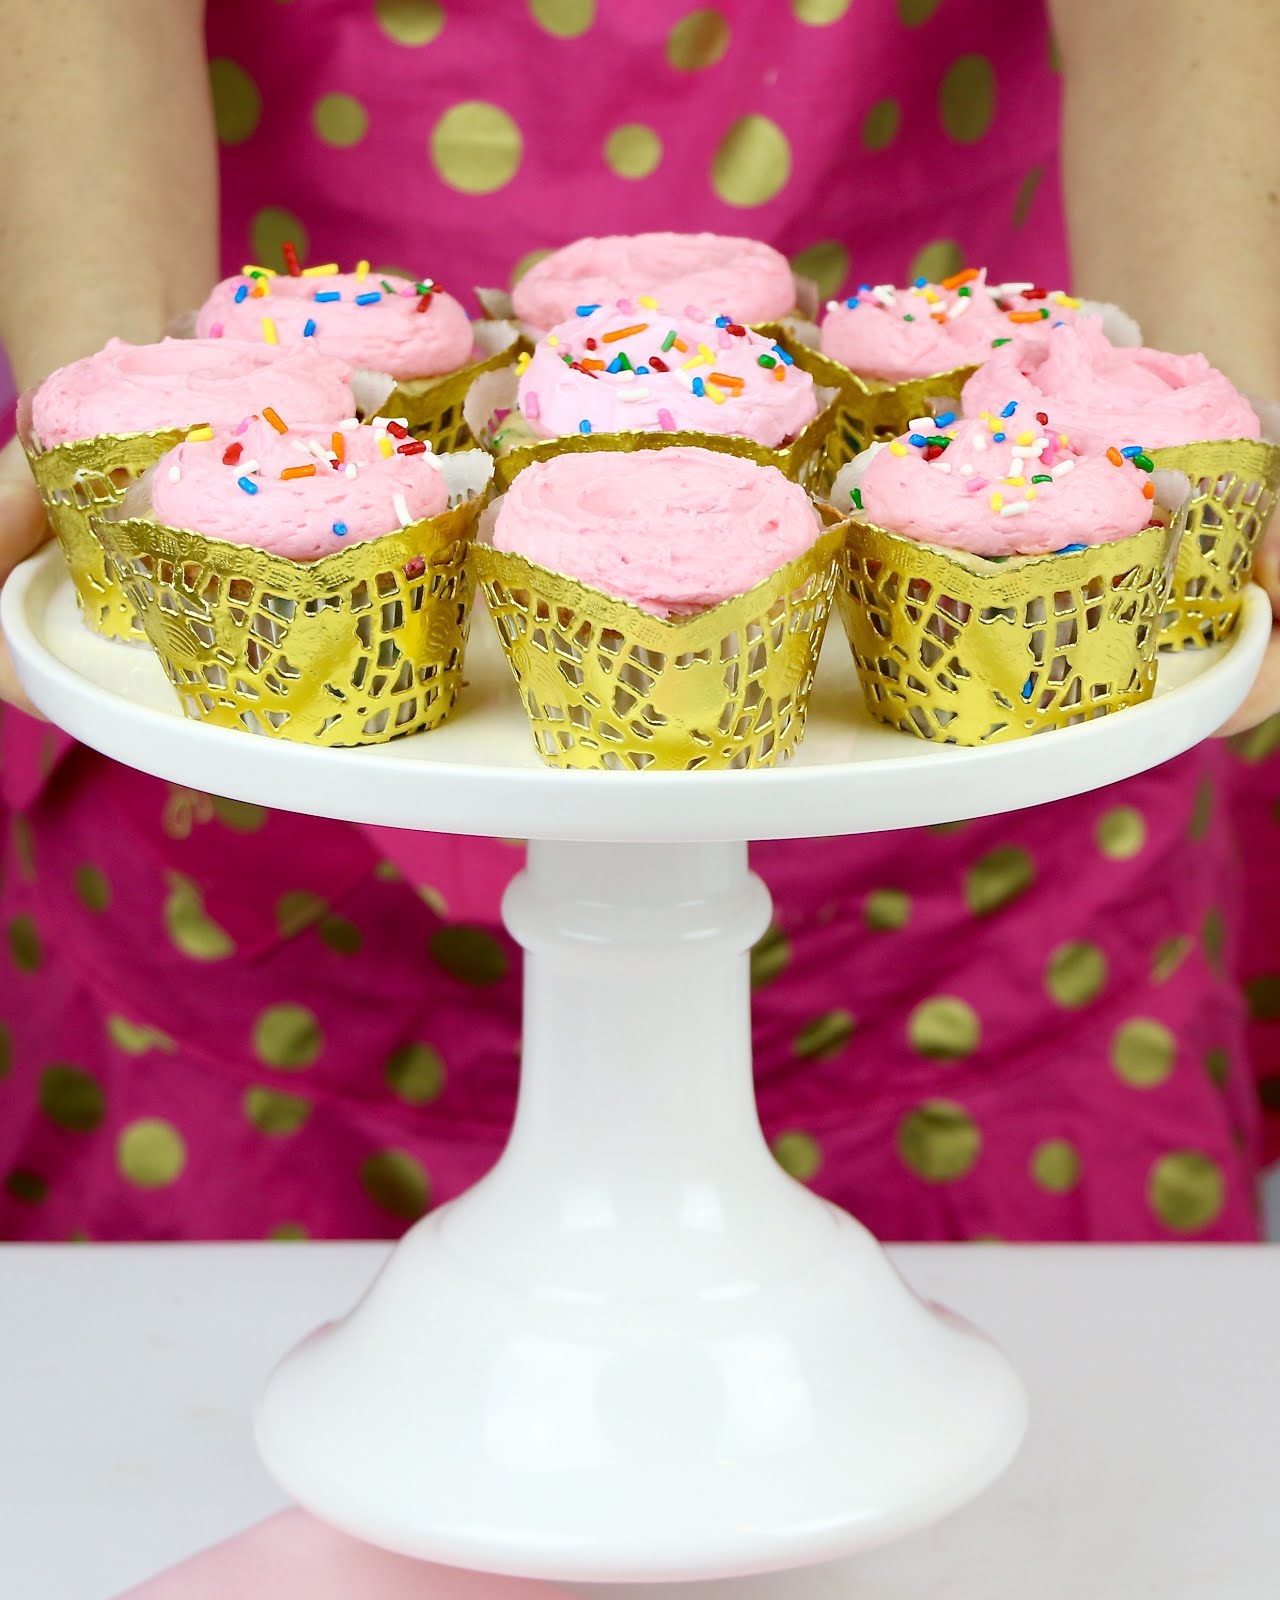 VIDEO} DIY Doily Cupcake Wrappers - Lindsay Ann Bakes